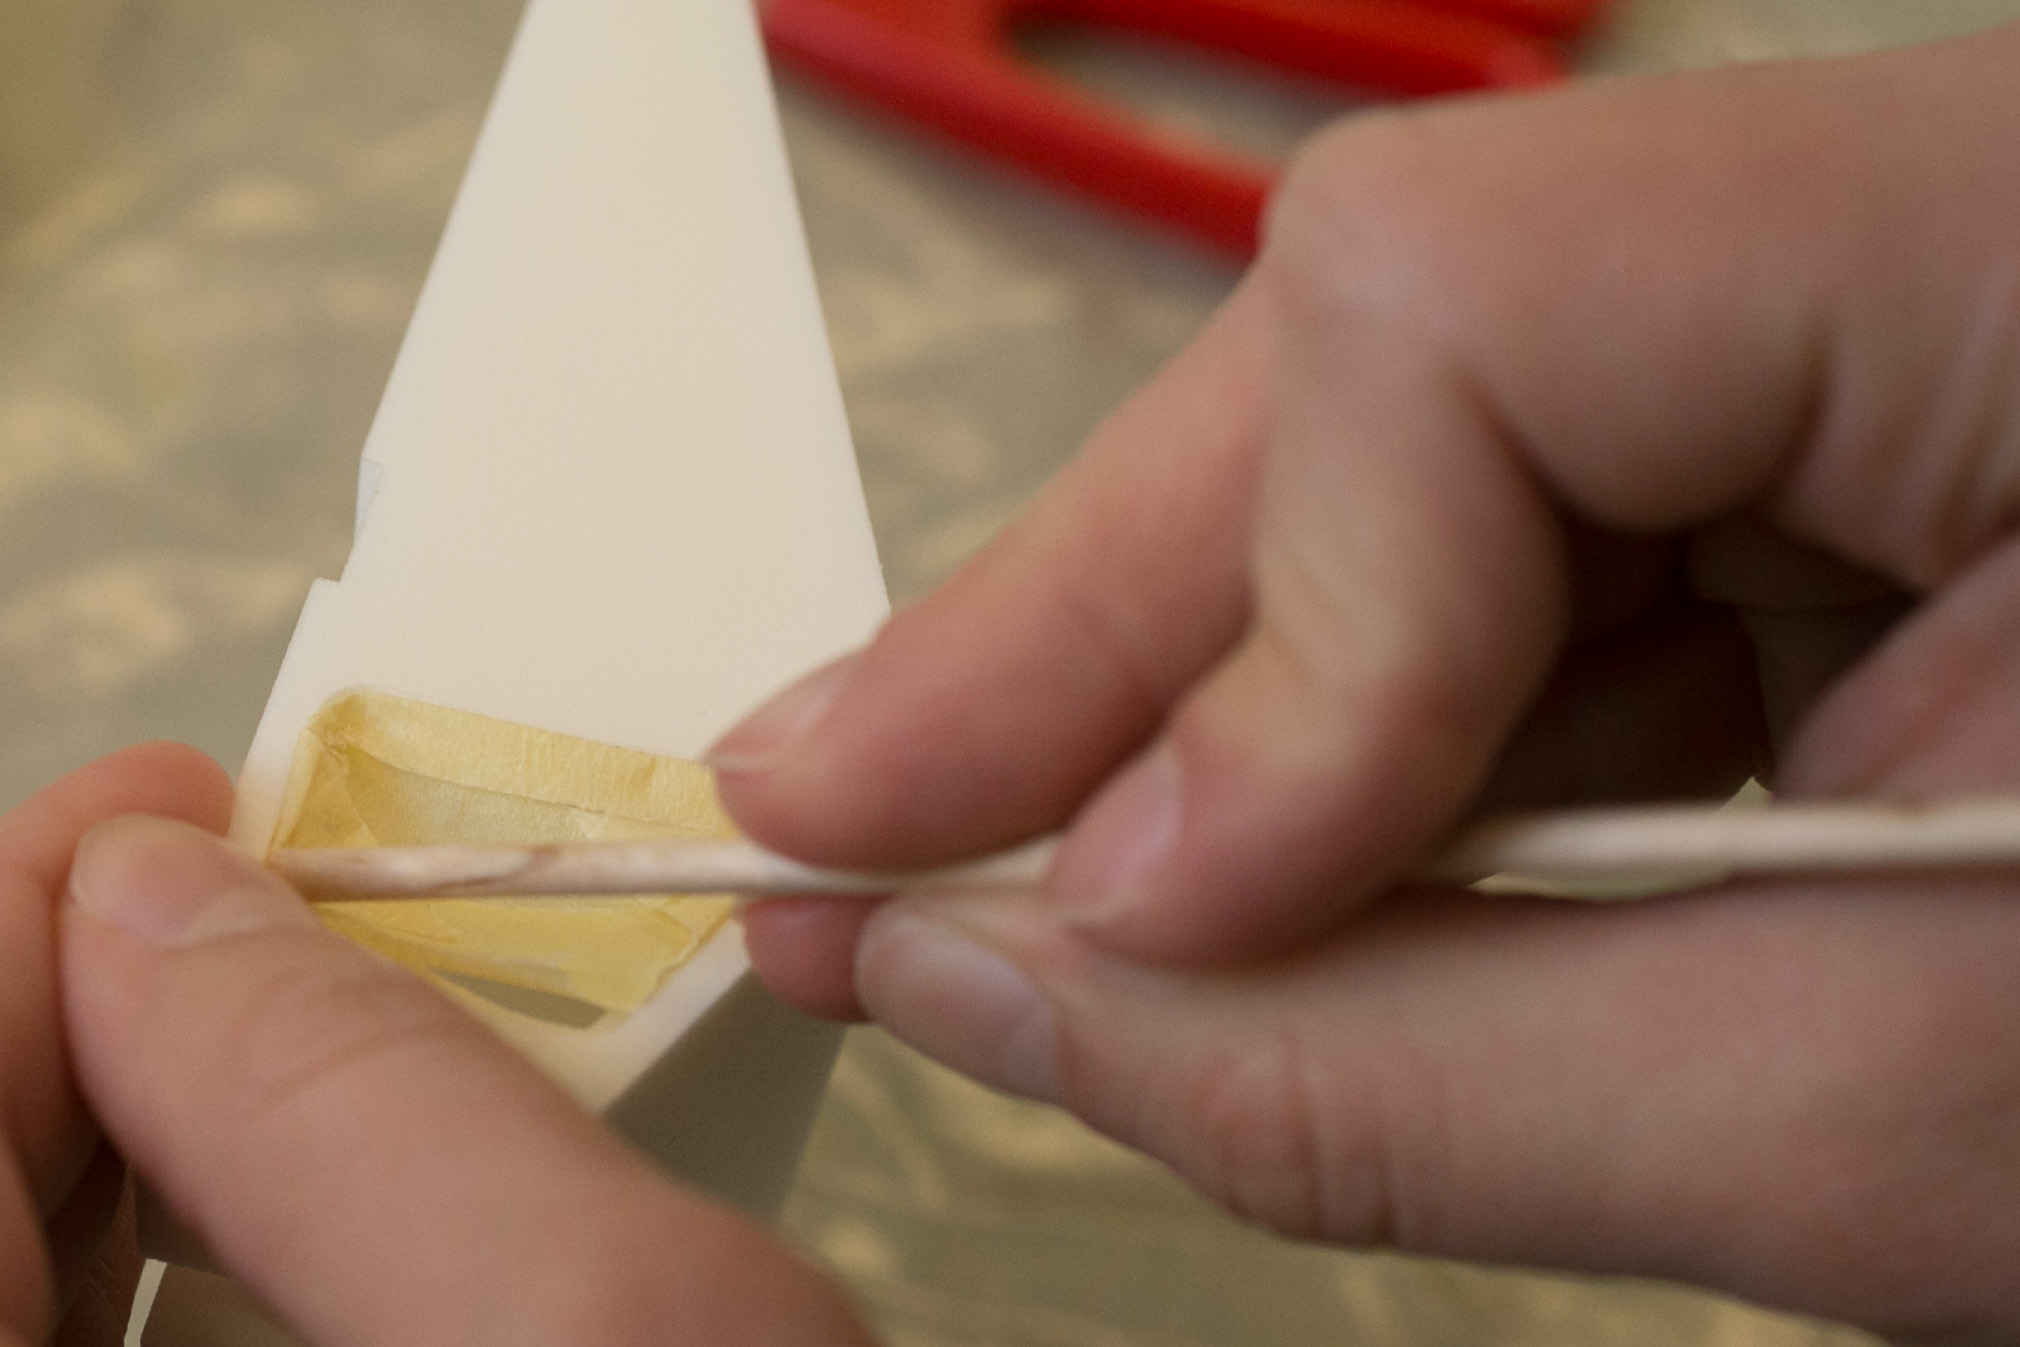 A pointy wooden stick helps when applying tape to tricky areas